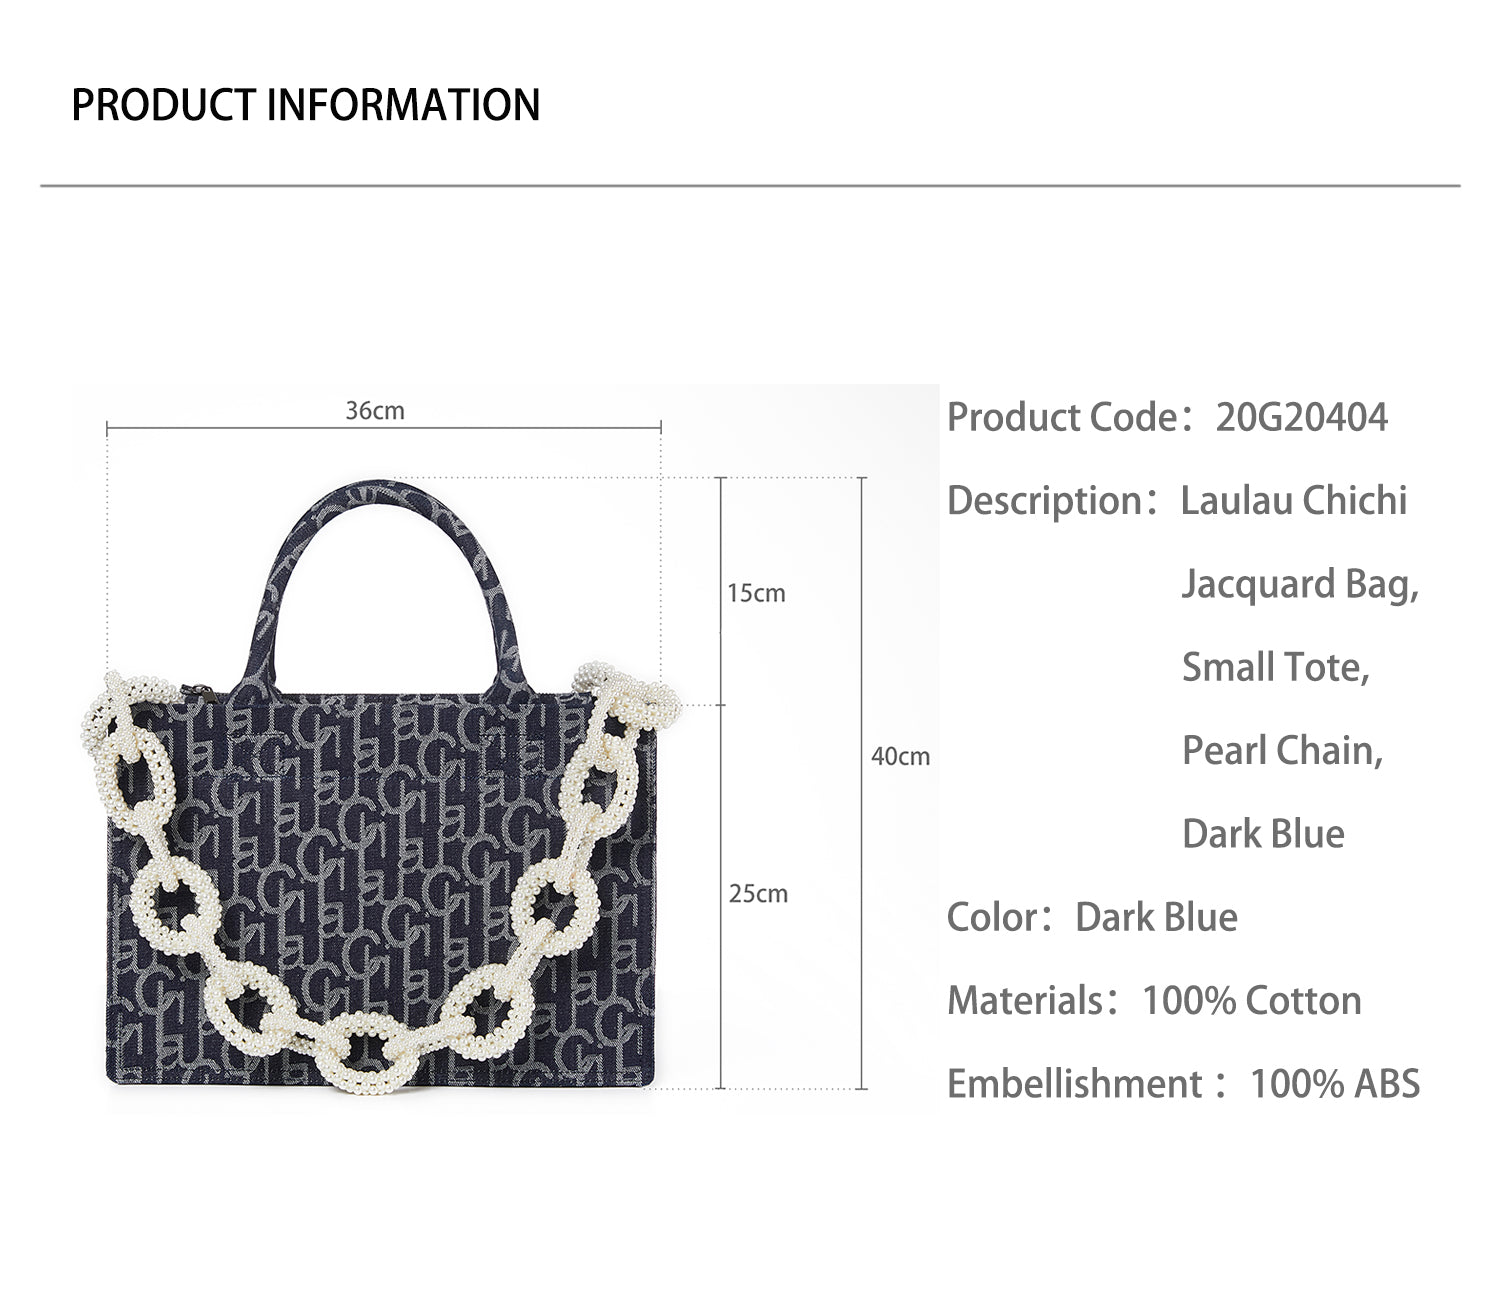 Laulau Chichi Jacquard Bag, Small Tote, Pearl Chain, Dark Blue